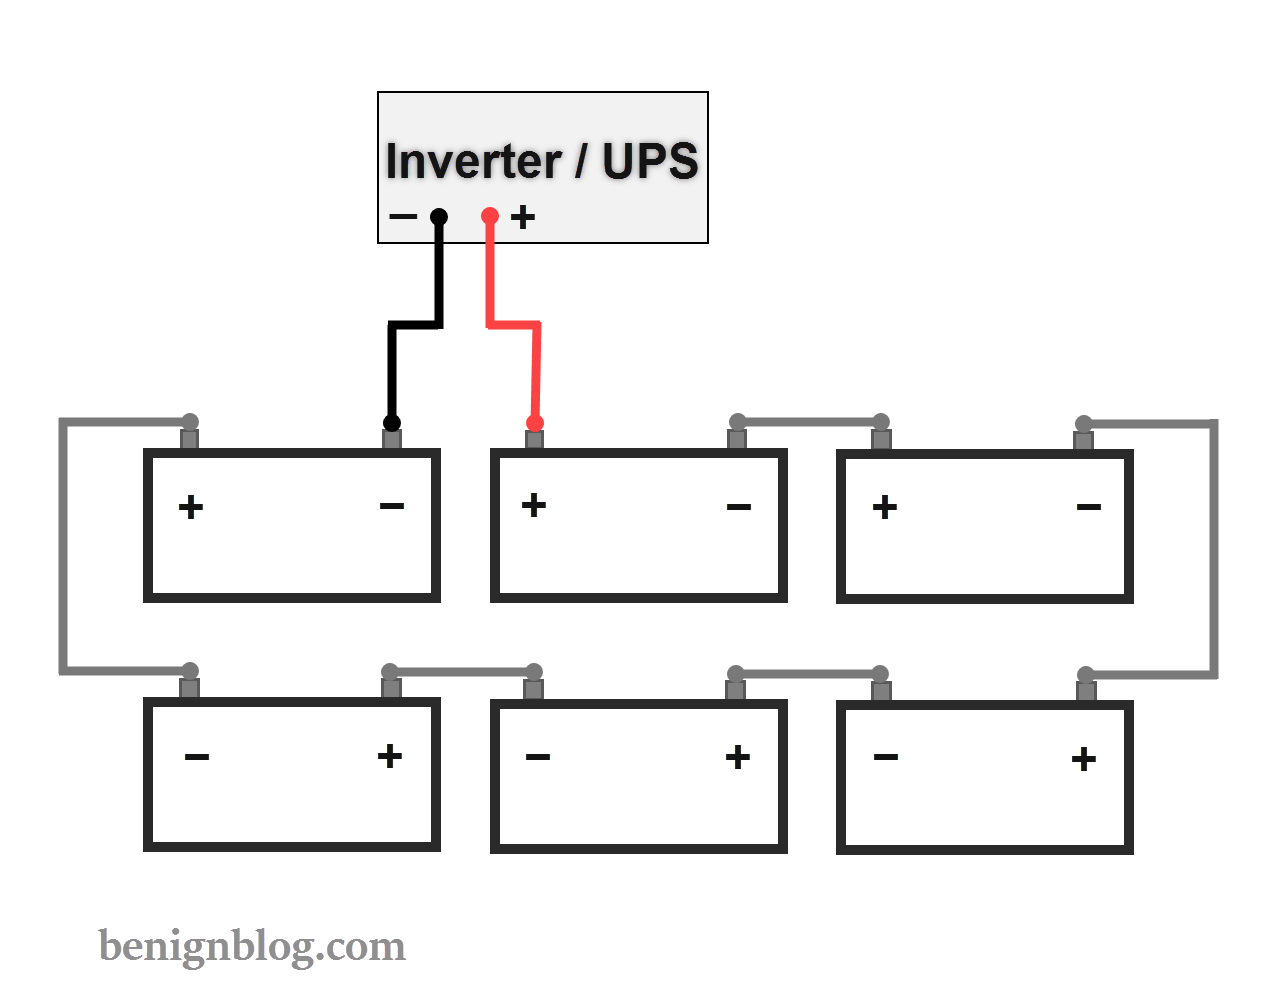 how to connect batteries in series with power inverter or ups battery terminal wiring diagram [ 1280 x 997 Pixel ]